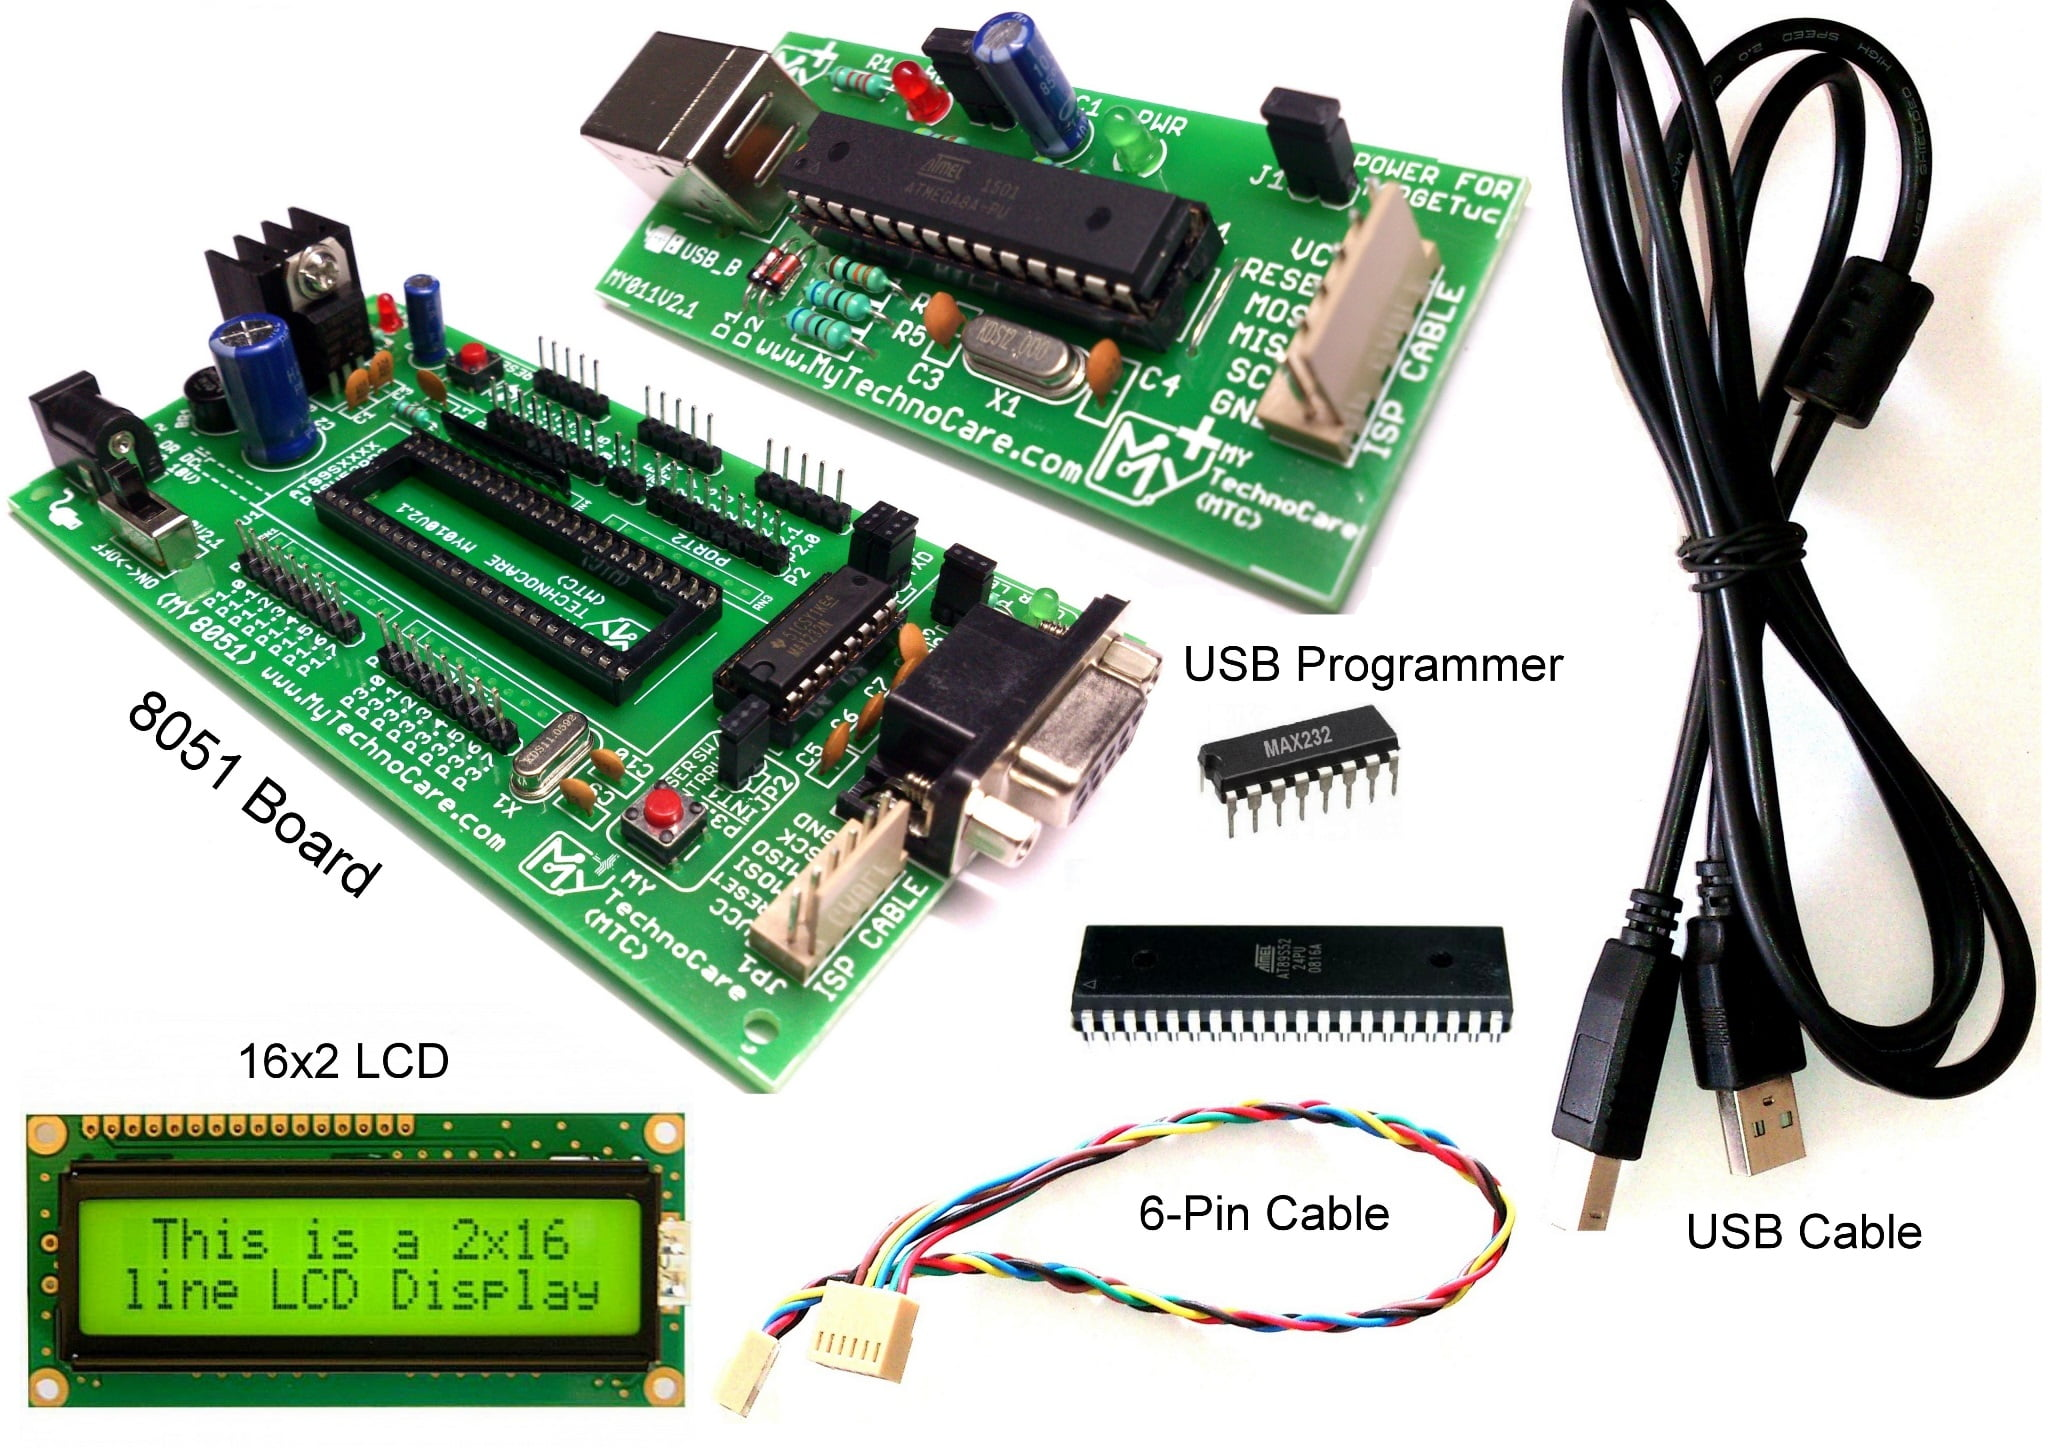 8051 Development Board With Lcd 16x2 Programmer My Technocare Circuitdiagramtointerfaceglcdwith8051 Usb For Microcontroller Project Atmel Asp